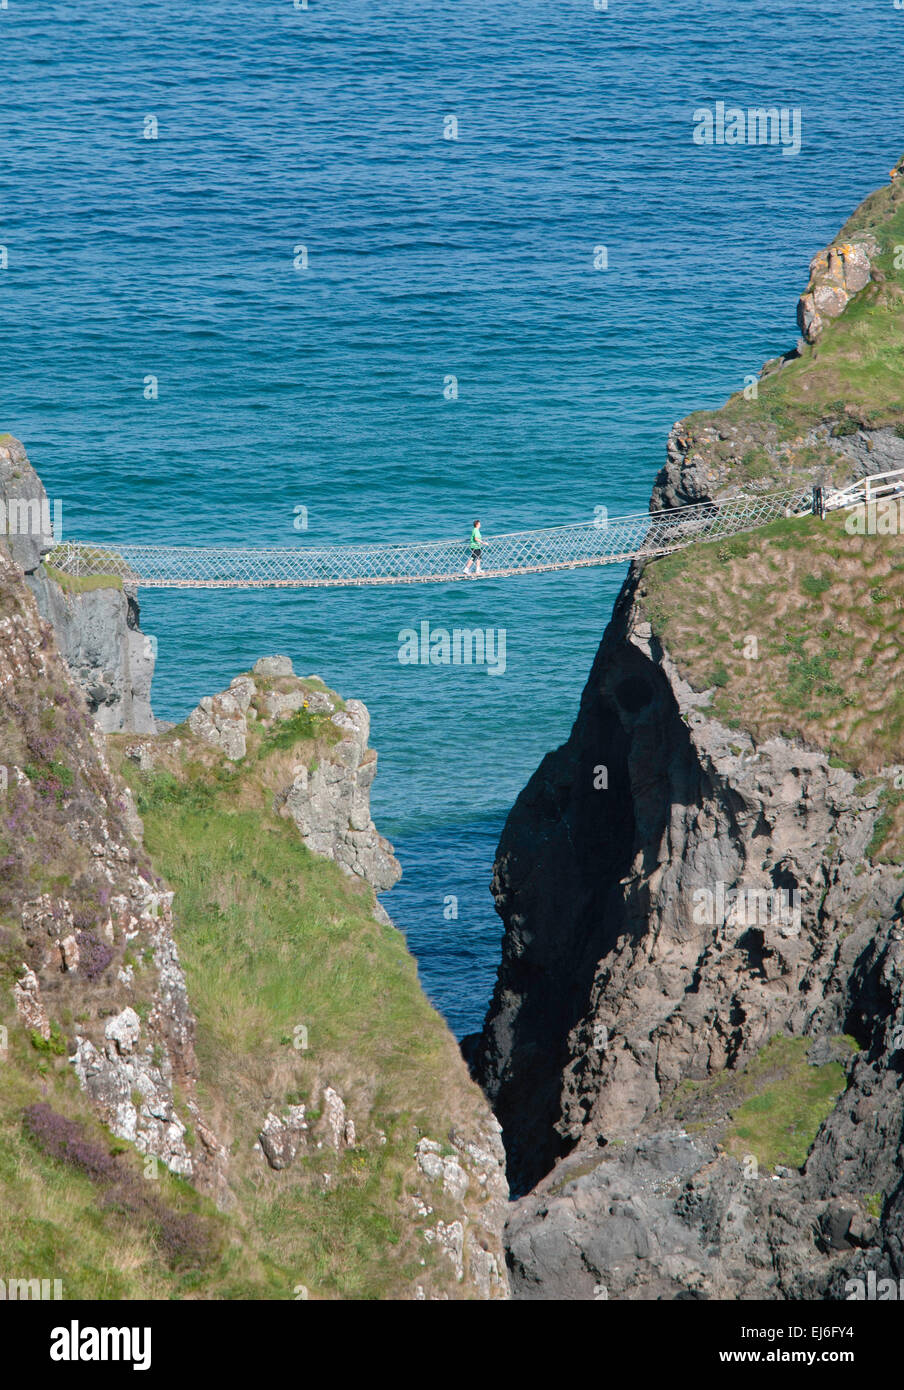 Carrick-a- Rede Rope Bridge, County Antrim, Northern Ireland - Stock Image